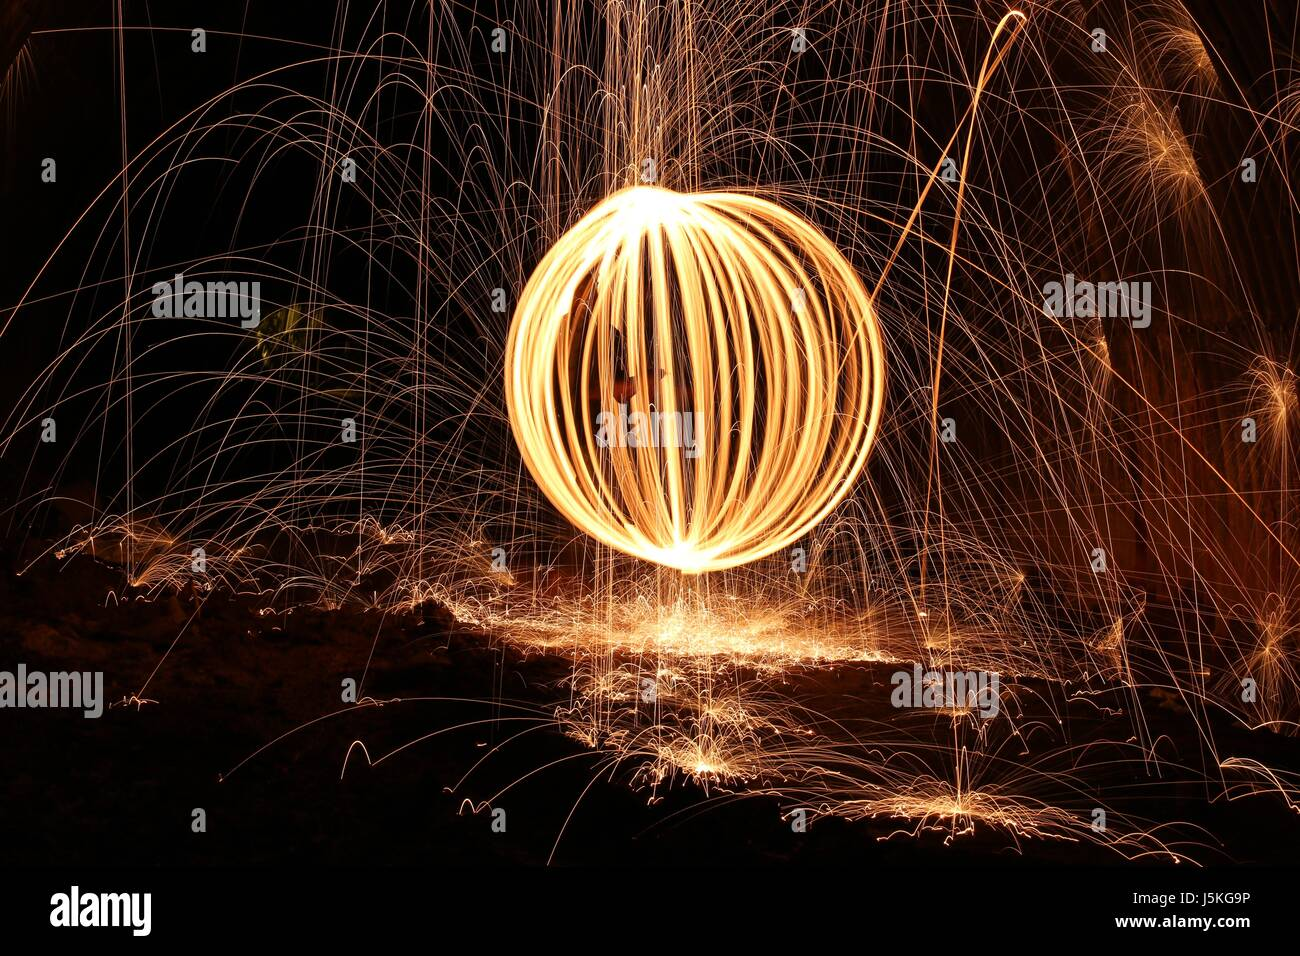 Ball Of Fire Stock Photo